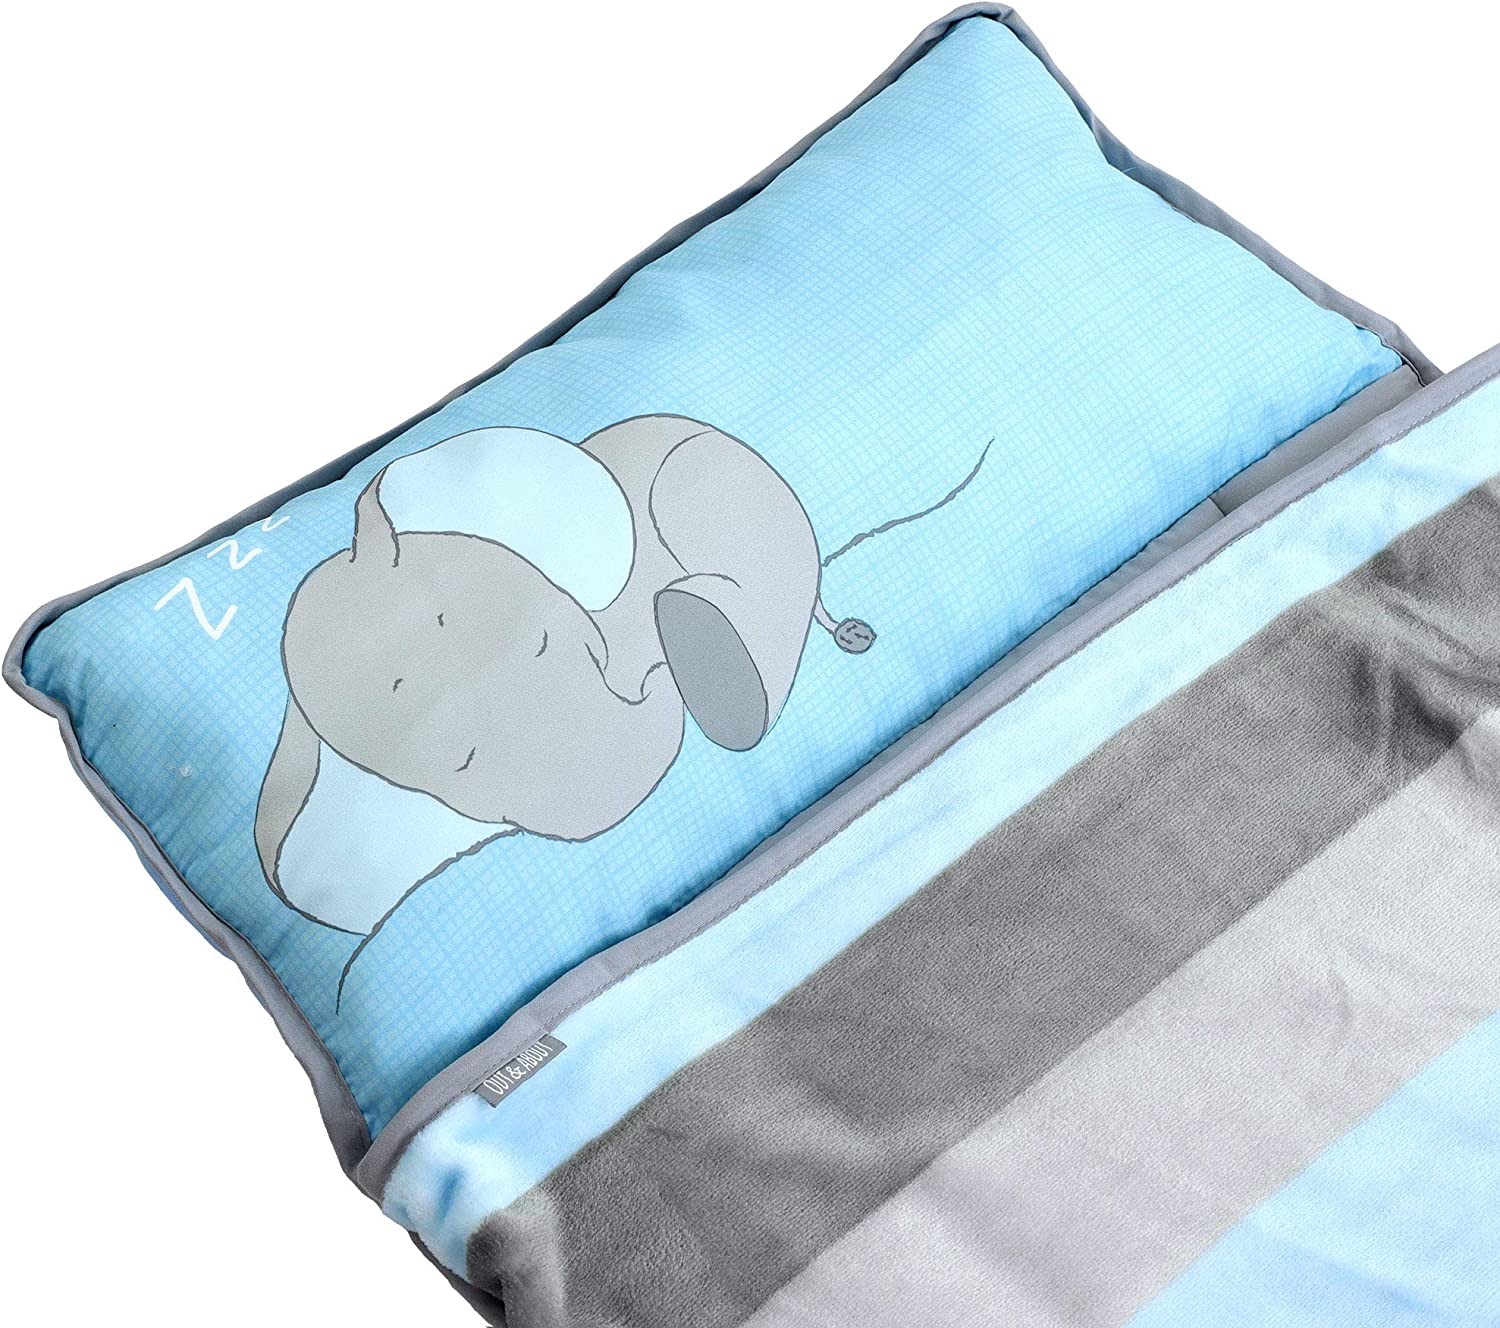 Pillow for Boys or Girls Blanket Baby Elephant Foldable Comfy Cover Toddler Nap Mats for Preschool Kinder Daycare